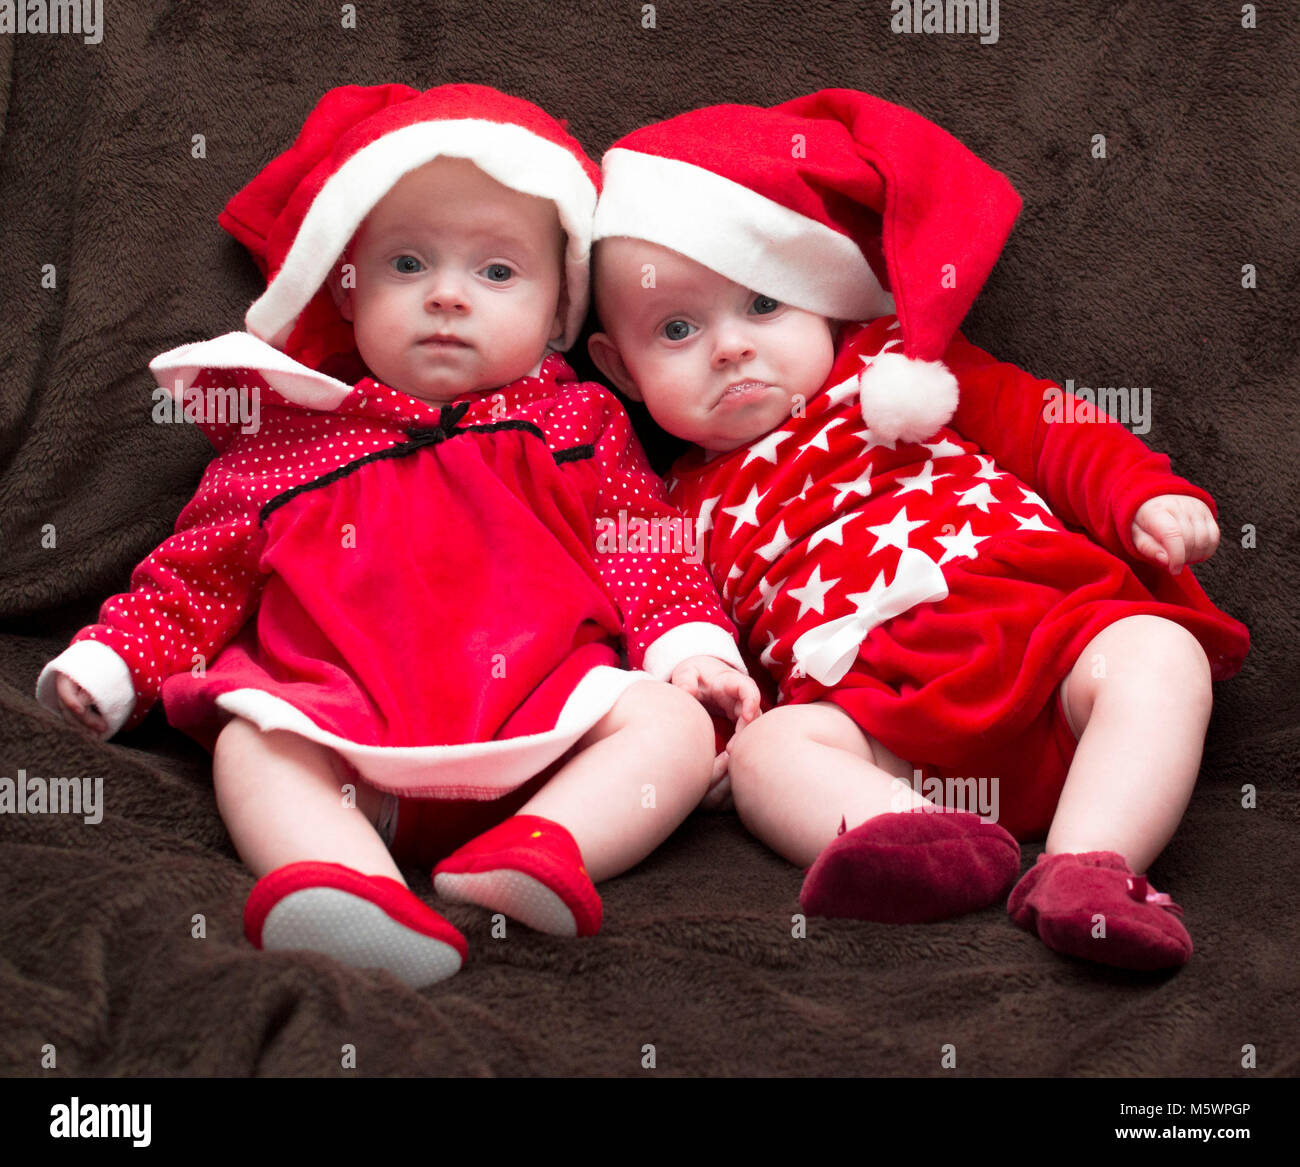 cute babies twins girls stock photo: 175743478 - alamy